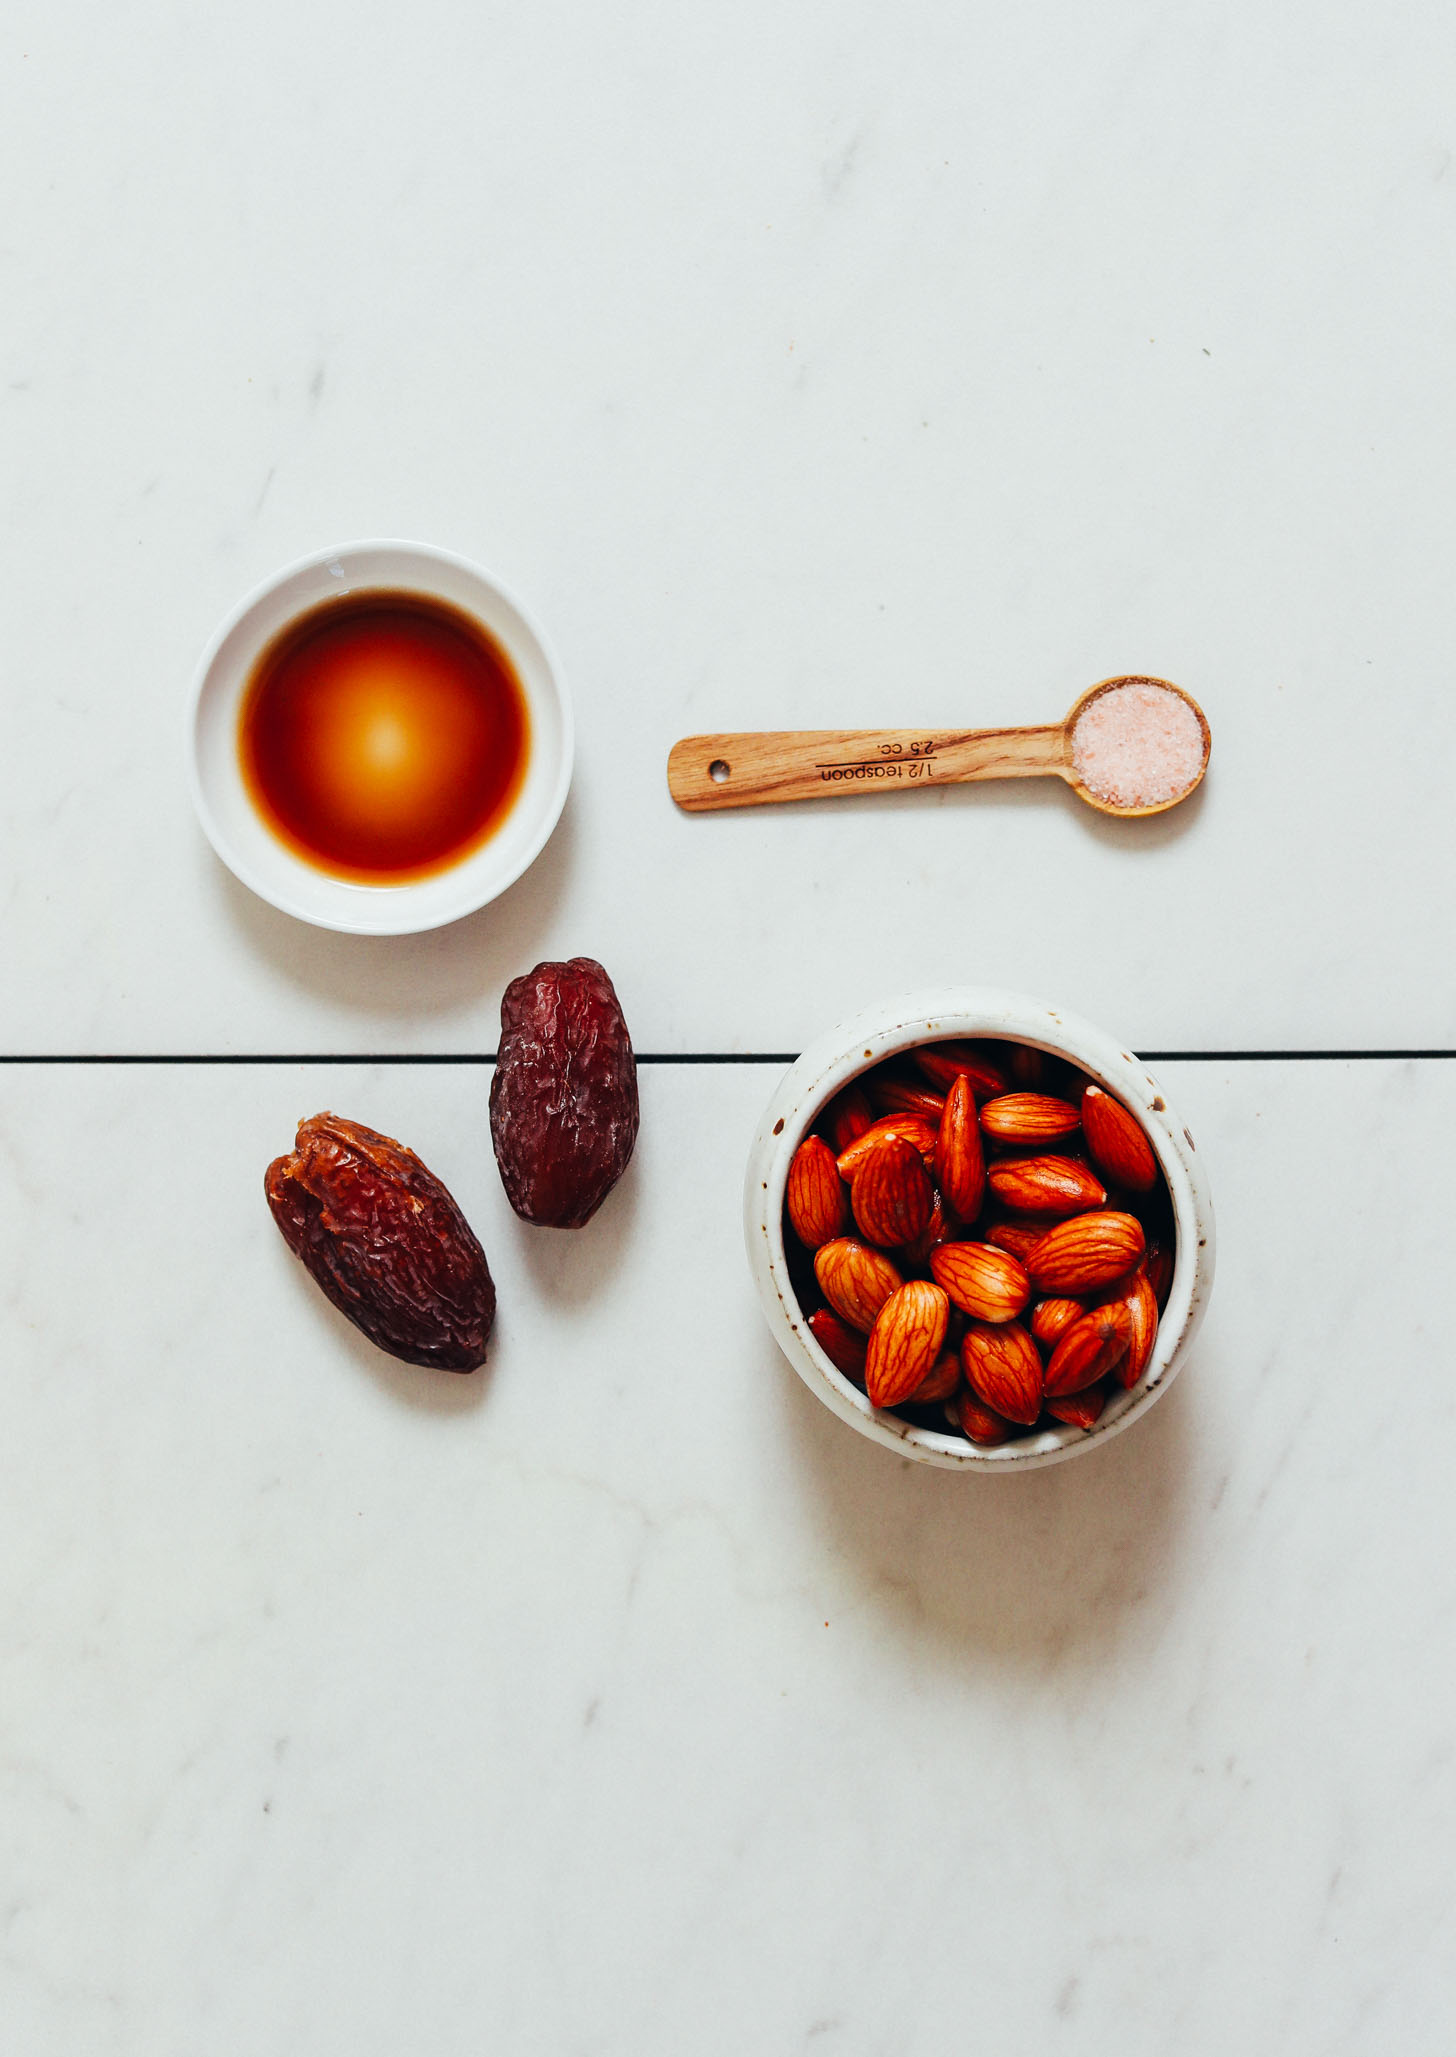 Almonds, dates, vanilla, and salt for making our Dairy-Free Coffee Creamer recipe